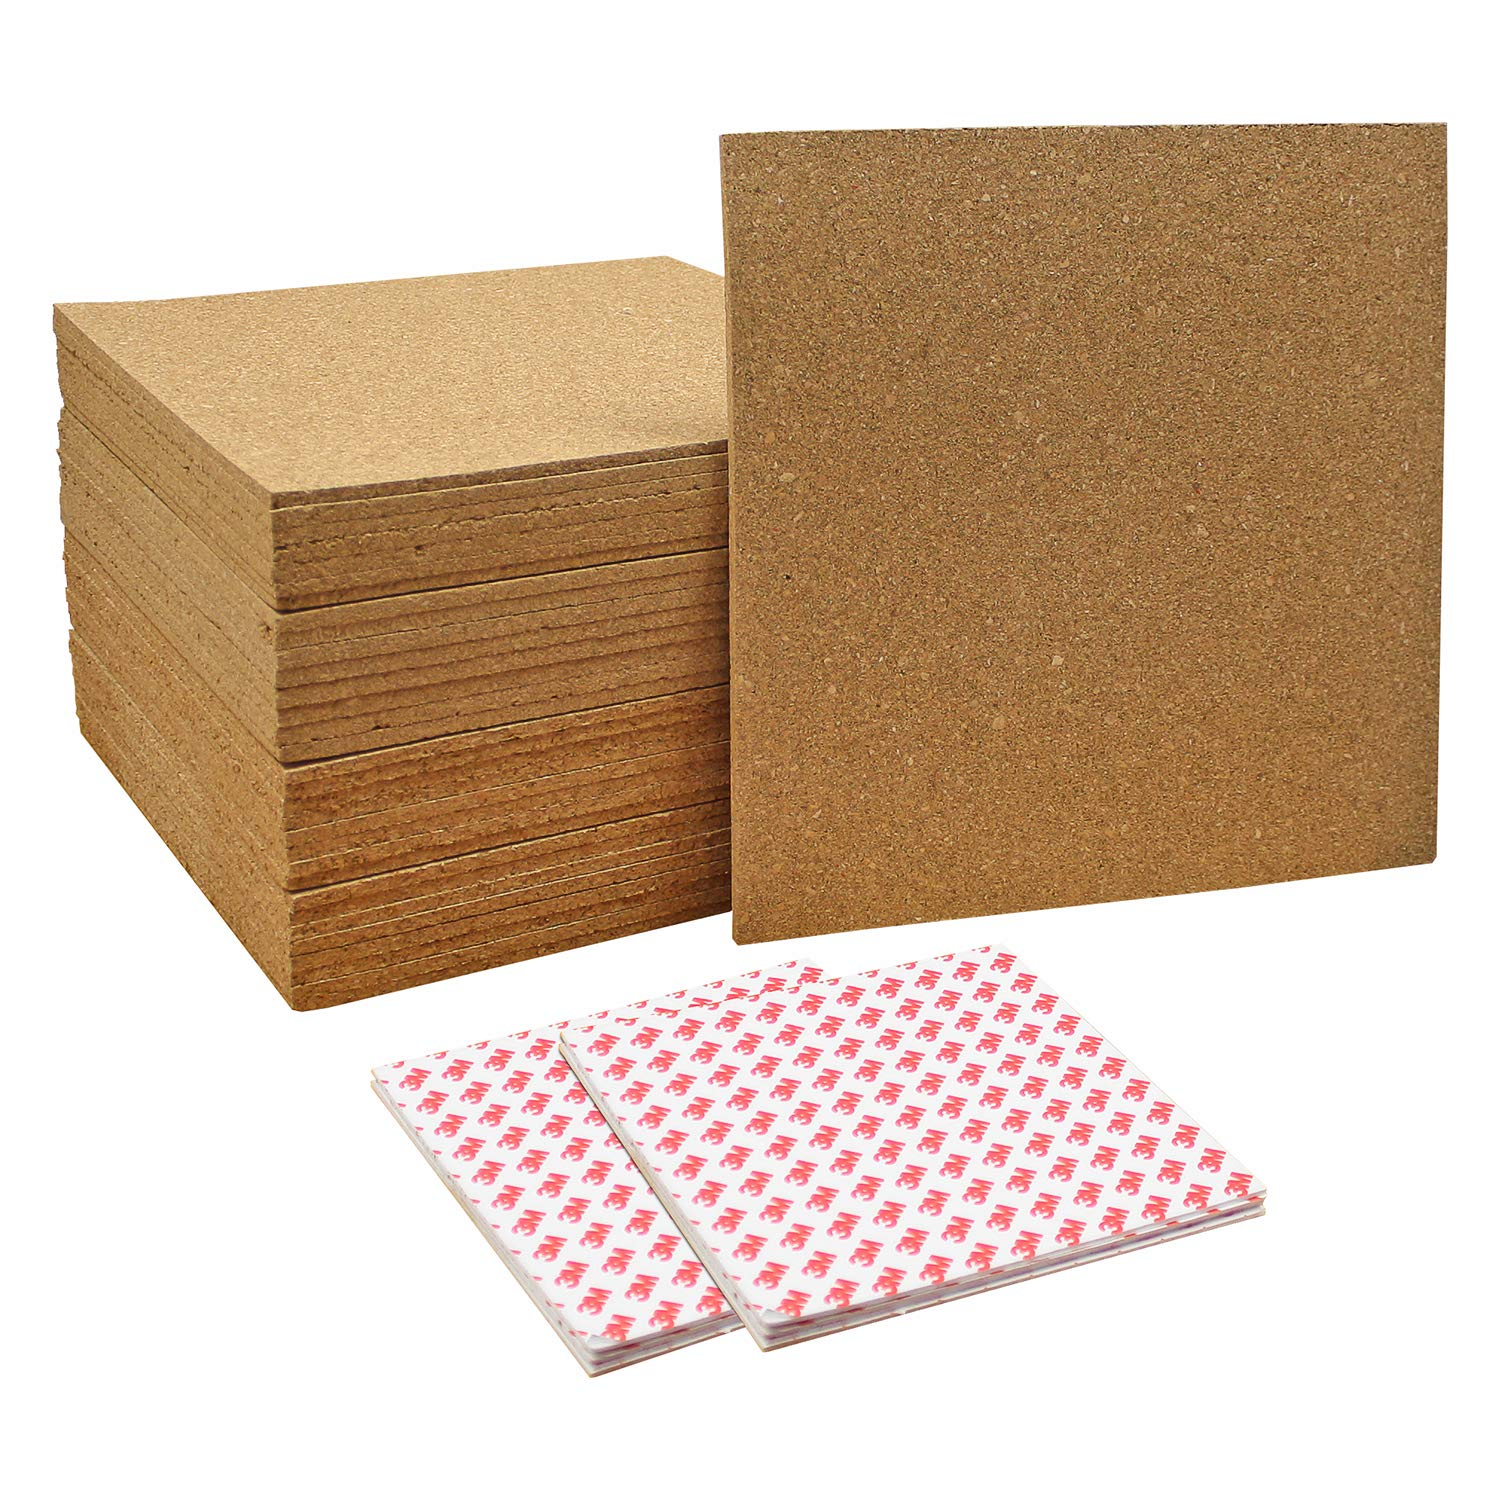 Thornton's Office Supplies Modular Frameless Cork Mini Wall Bulletin Board Tiles with 3M Adhesive, Natural, 12 Inch x 12 Inch, Frameless (32-Count)